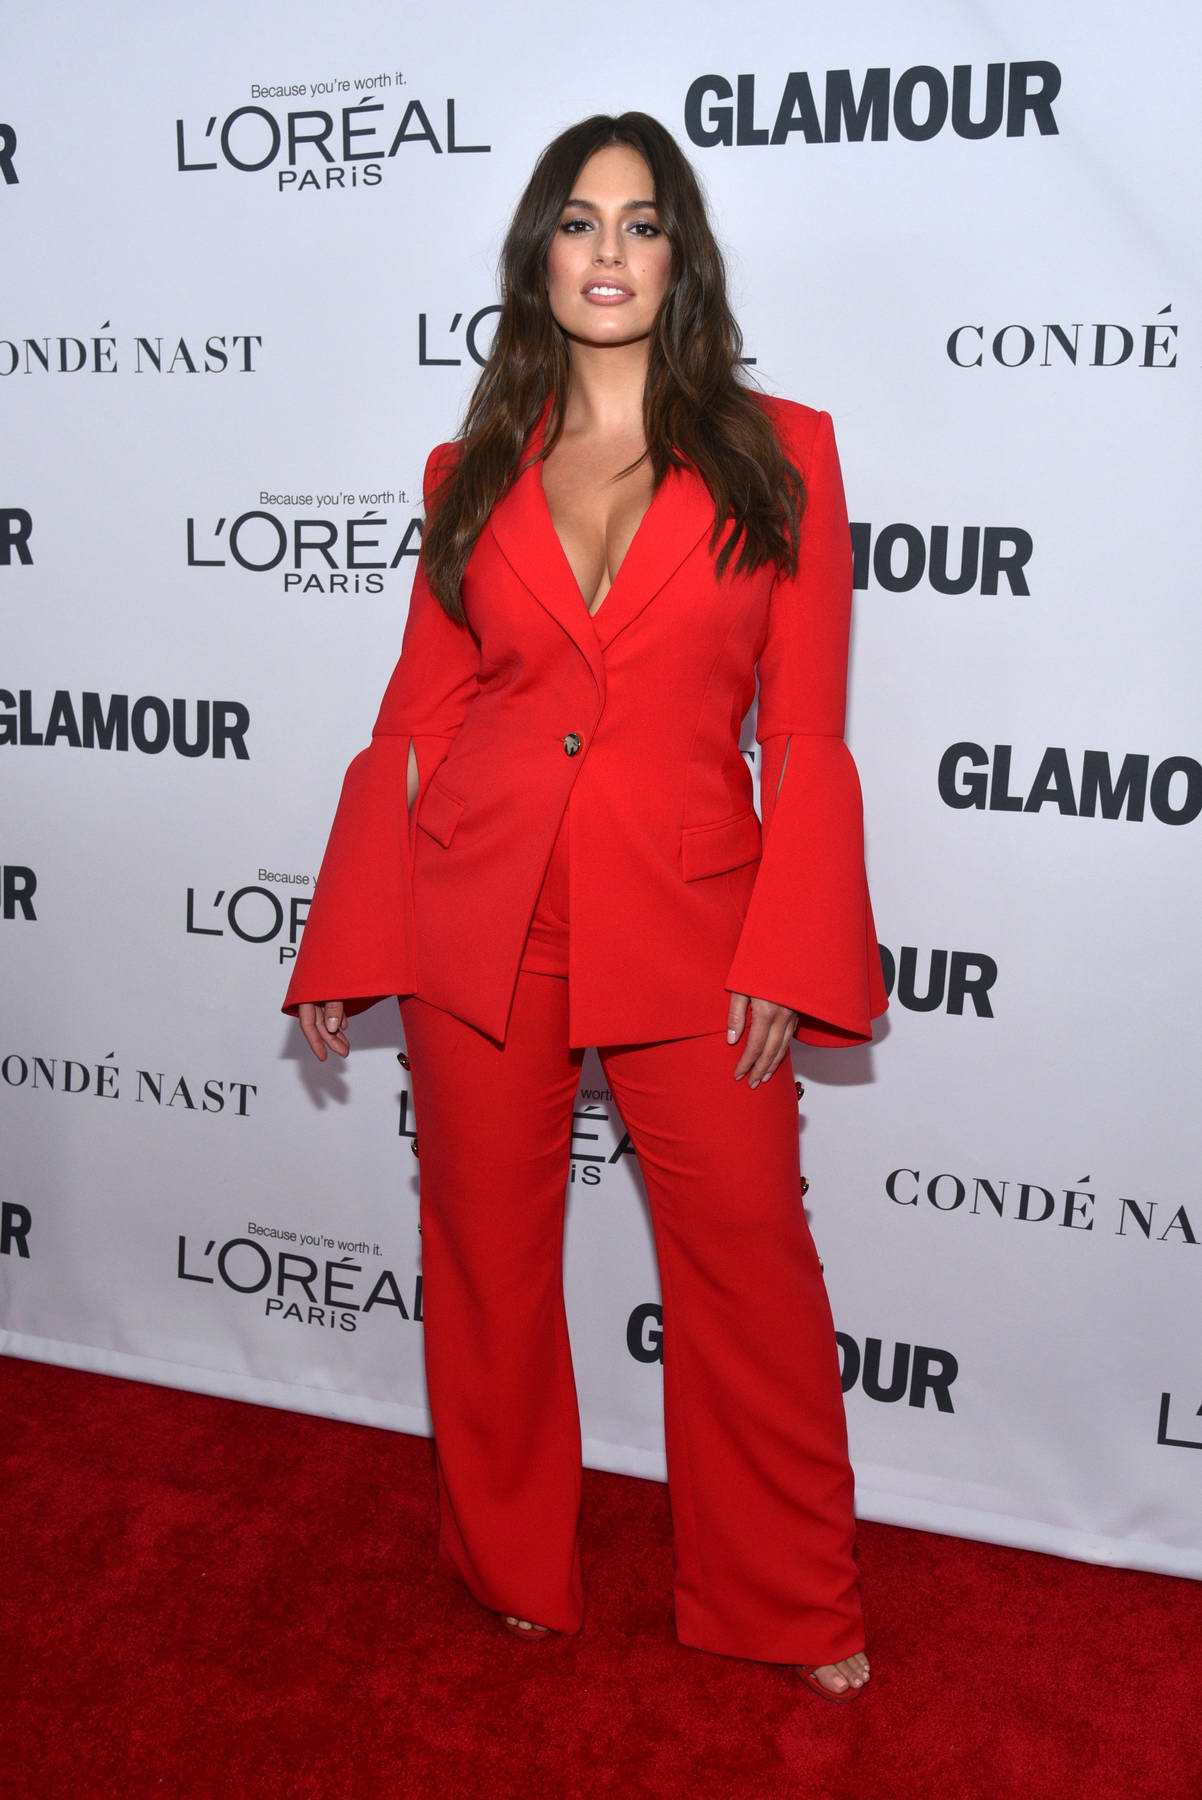 Ashley Graham at the Glamour Women Of The Year Awards in New York